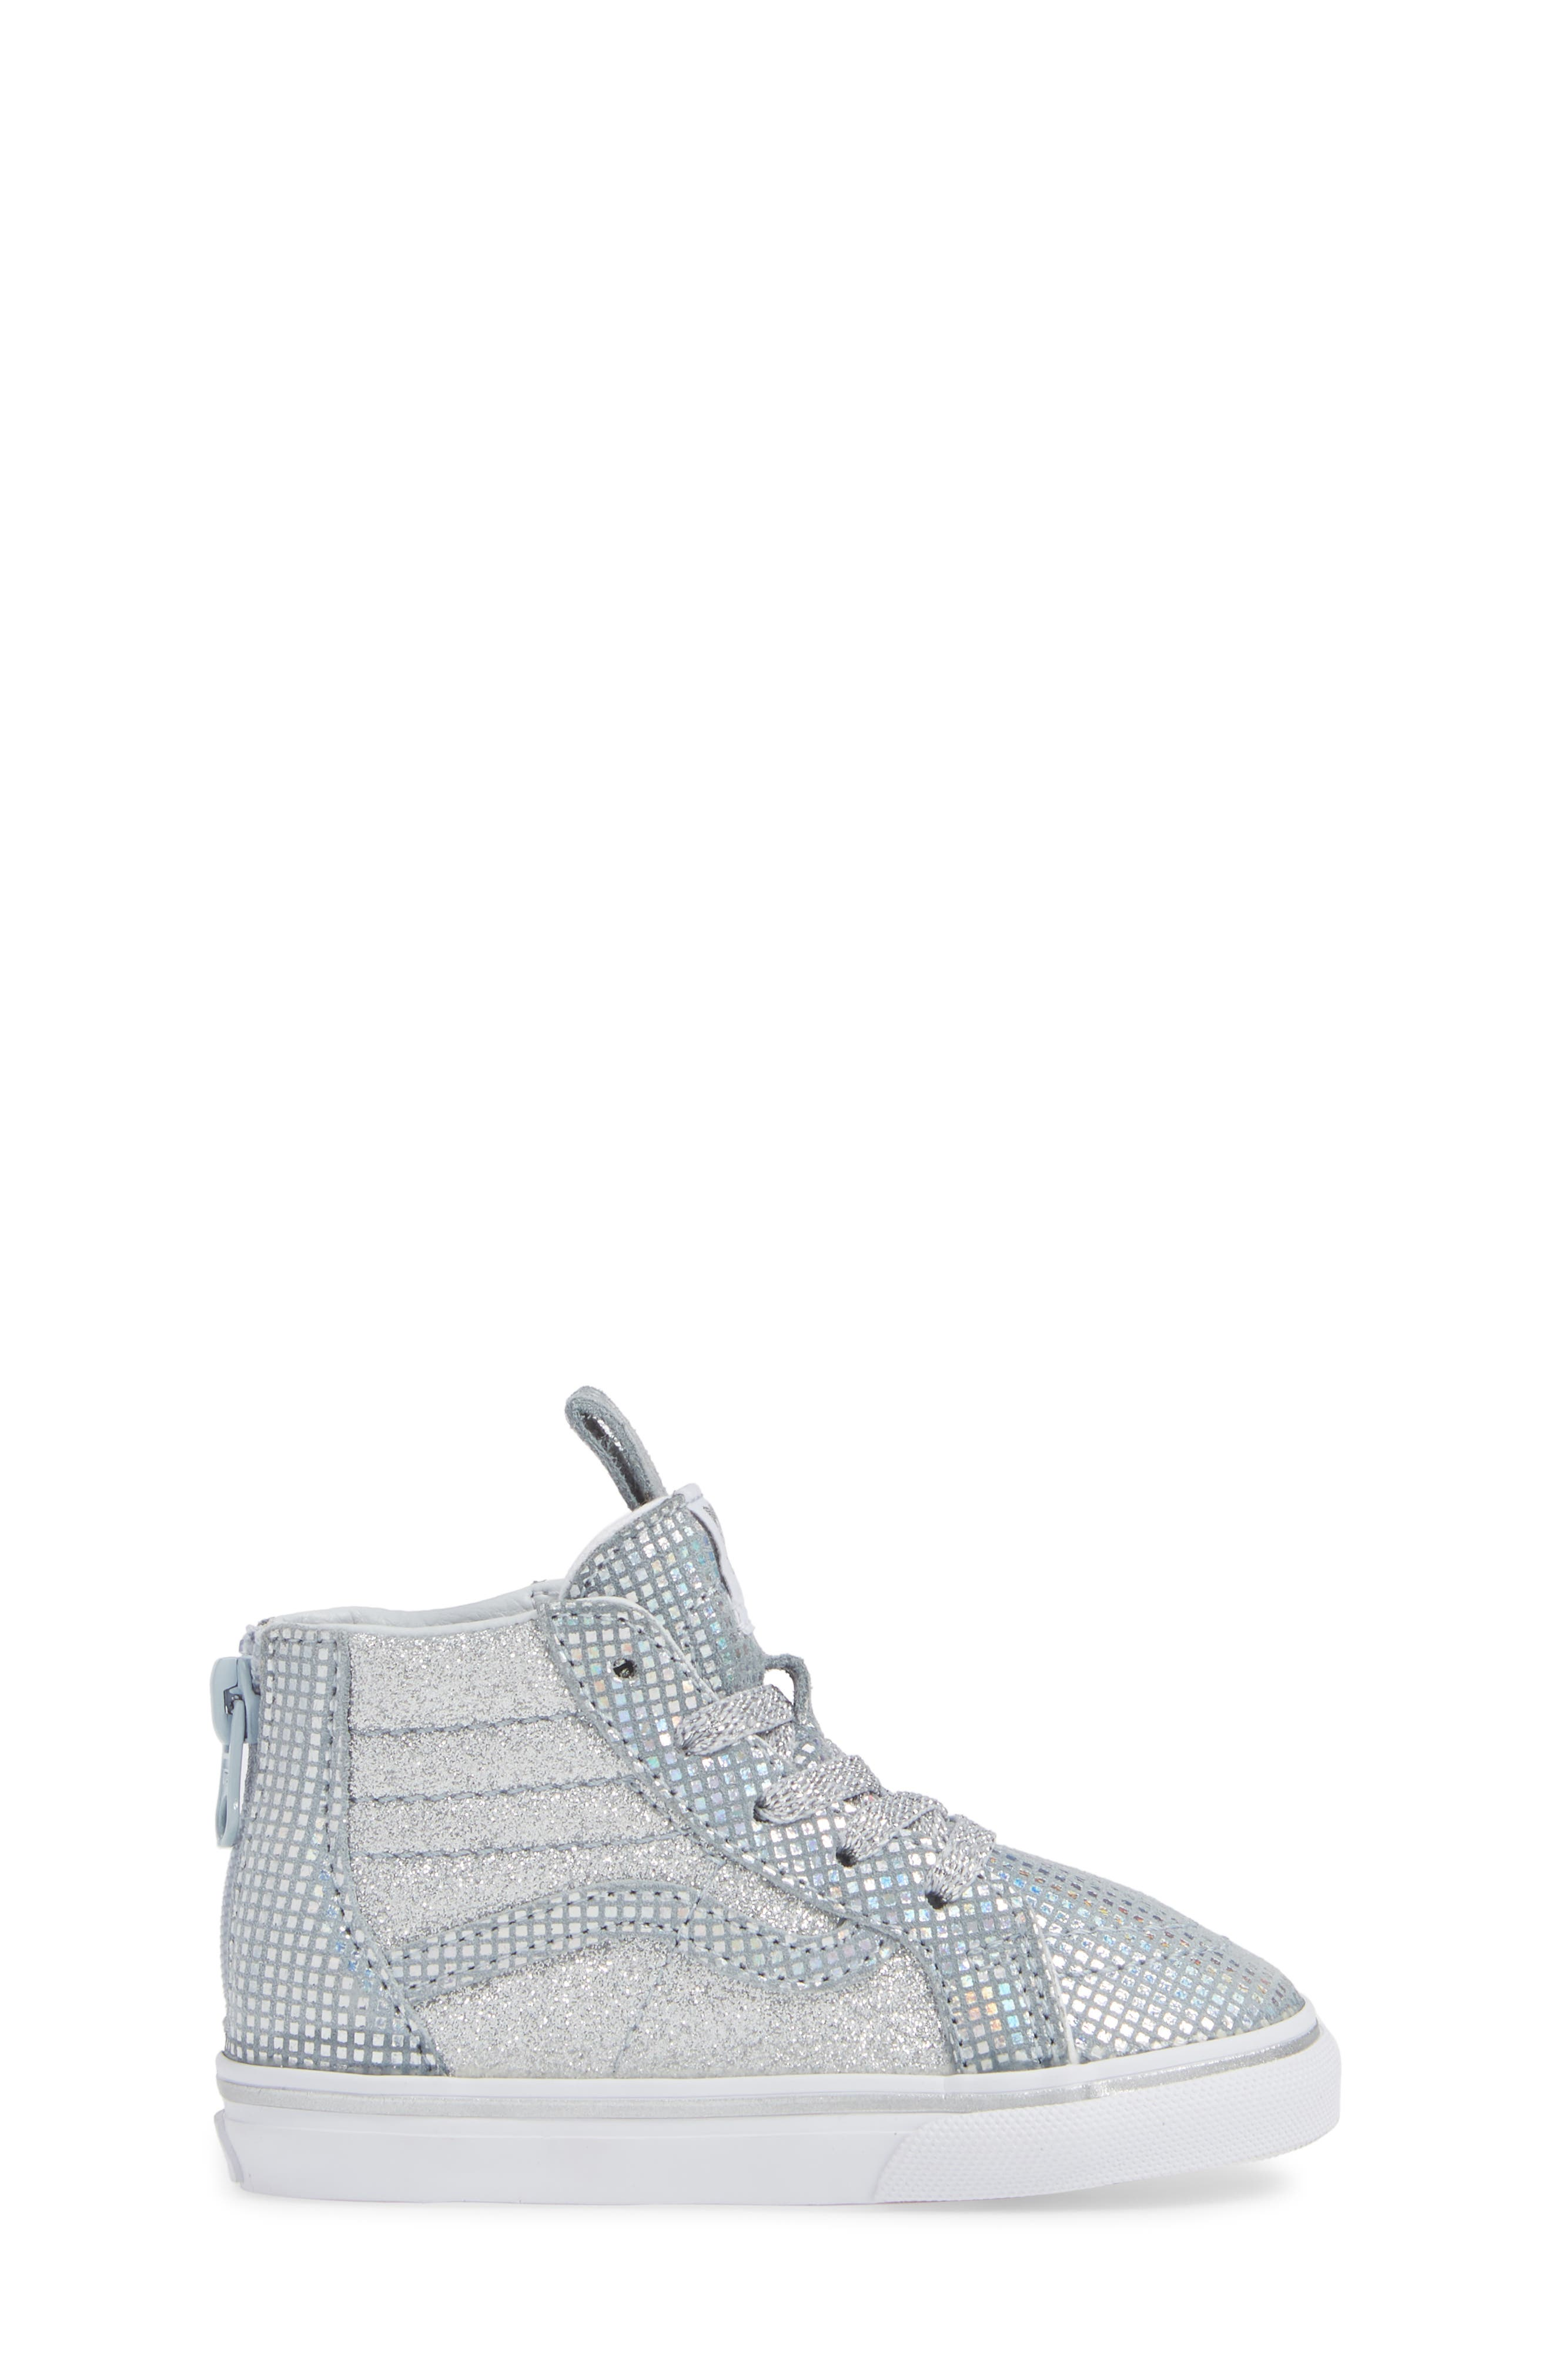 SK8-Hi Zip Sparkle Sneaker,                             Alternate thumbnail 3, color,                             METALLIC SILVER GLITTER